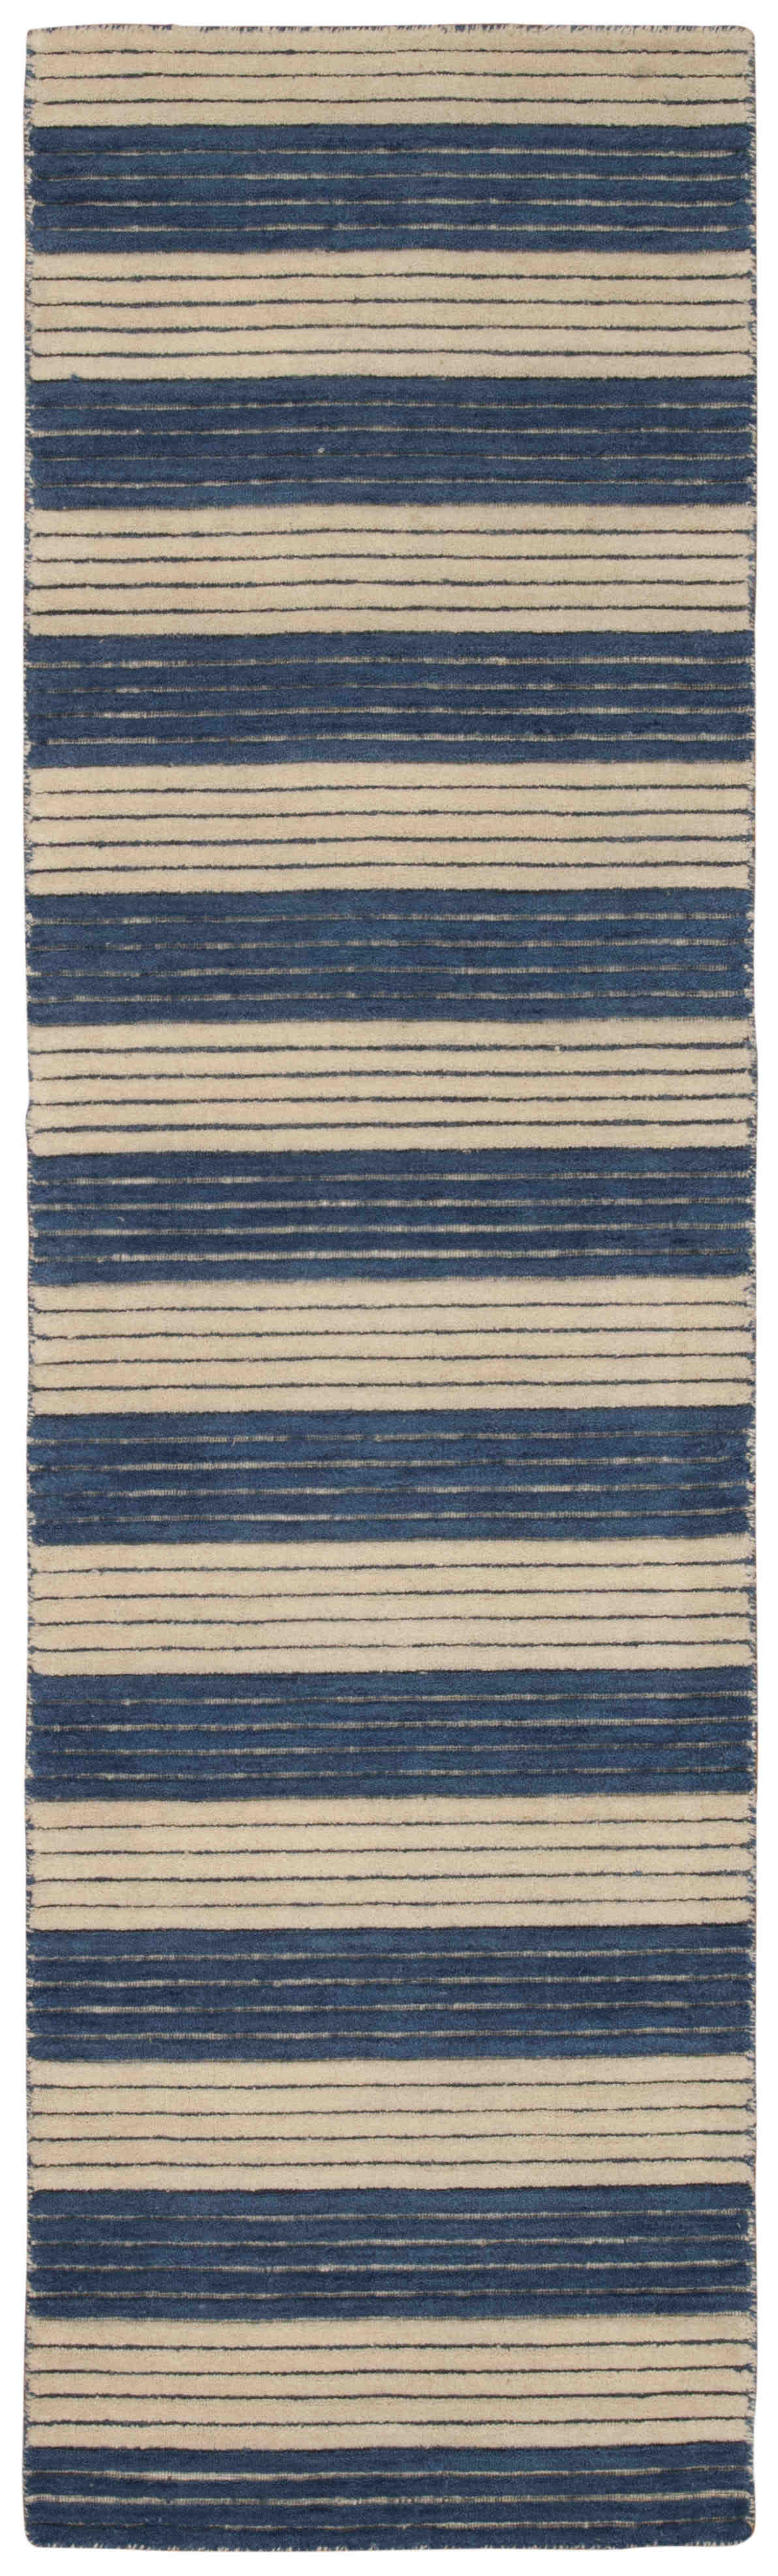 Barclay Butera Ripple Midnight Blue Area Rug By Nourison